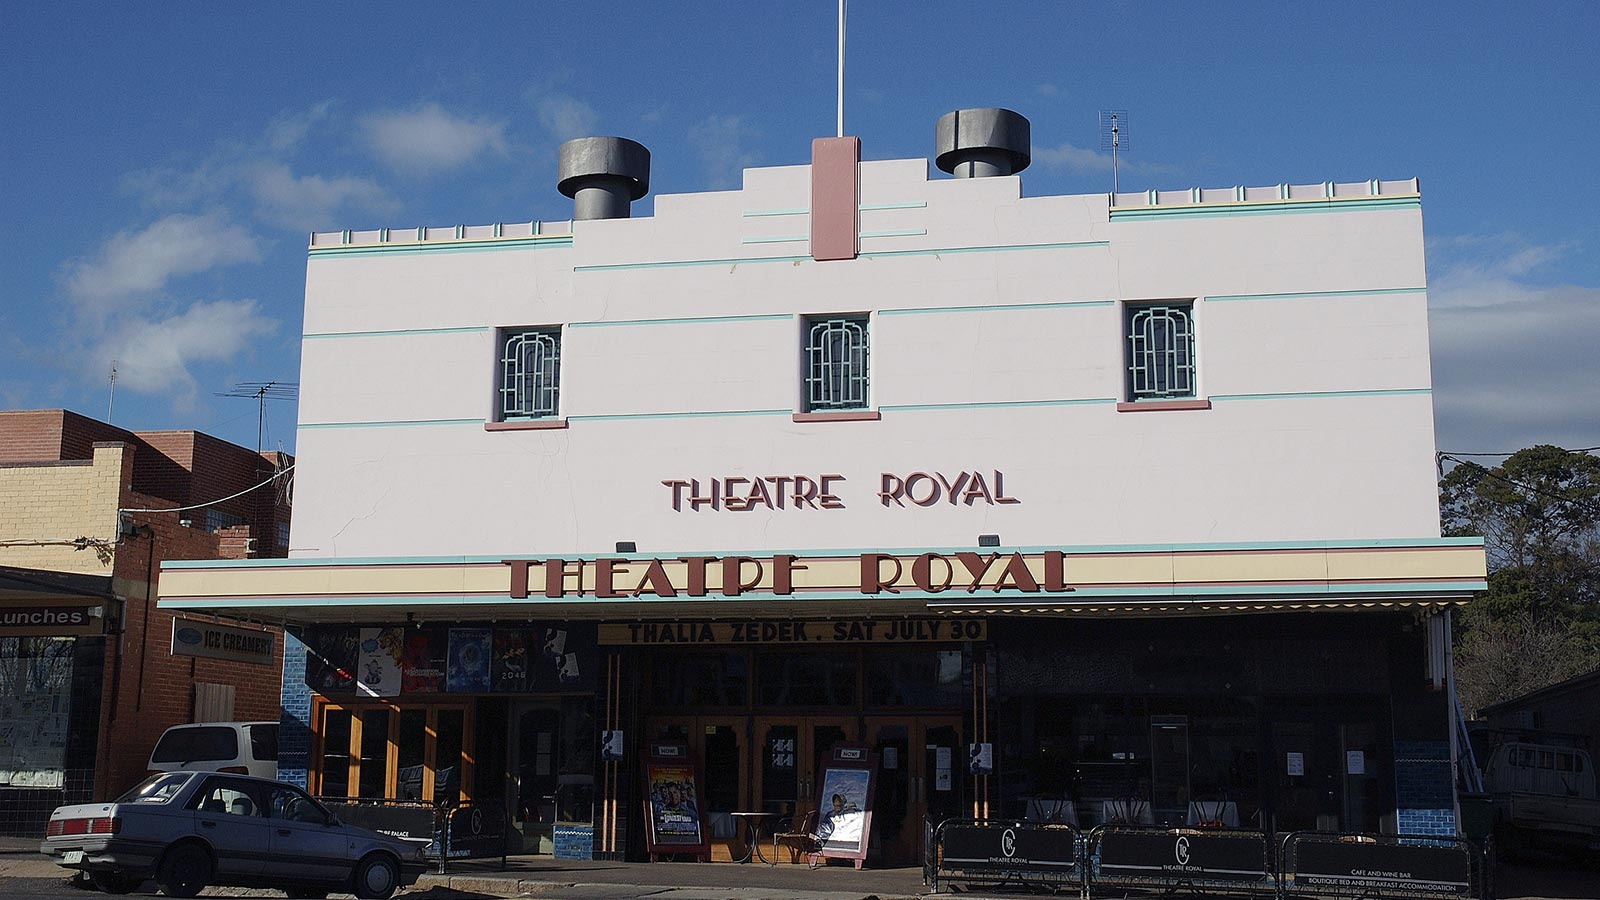 Theatre Royal, Castlemaine, Goldfields, Victoria, Australia